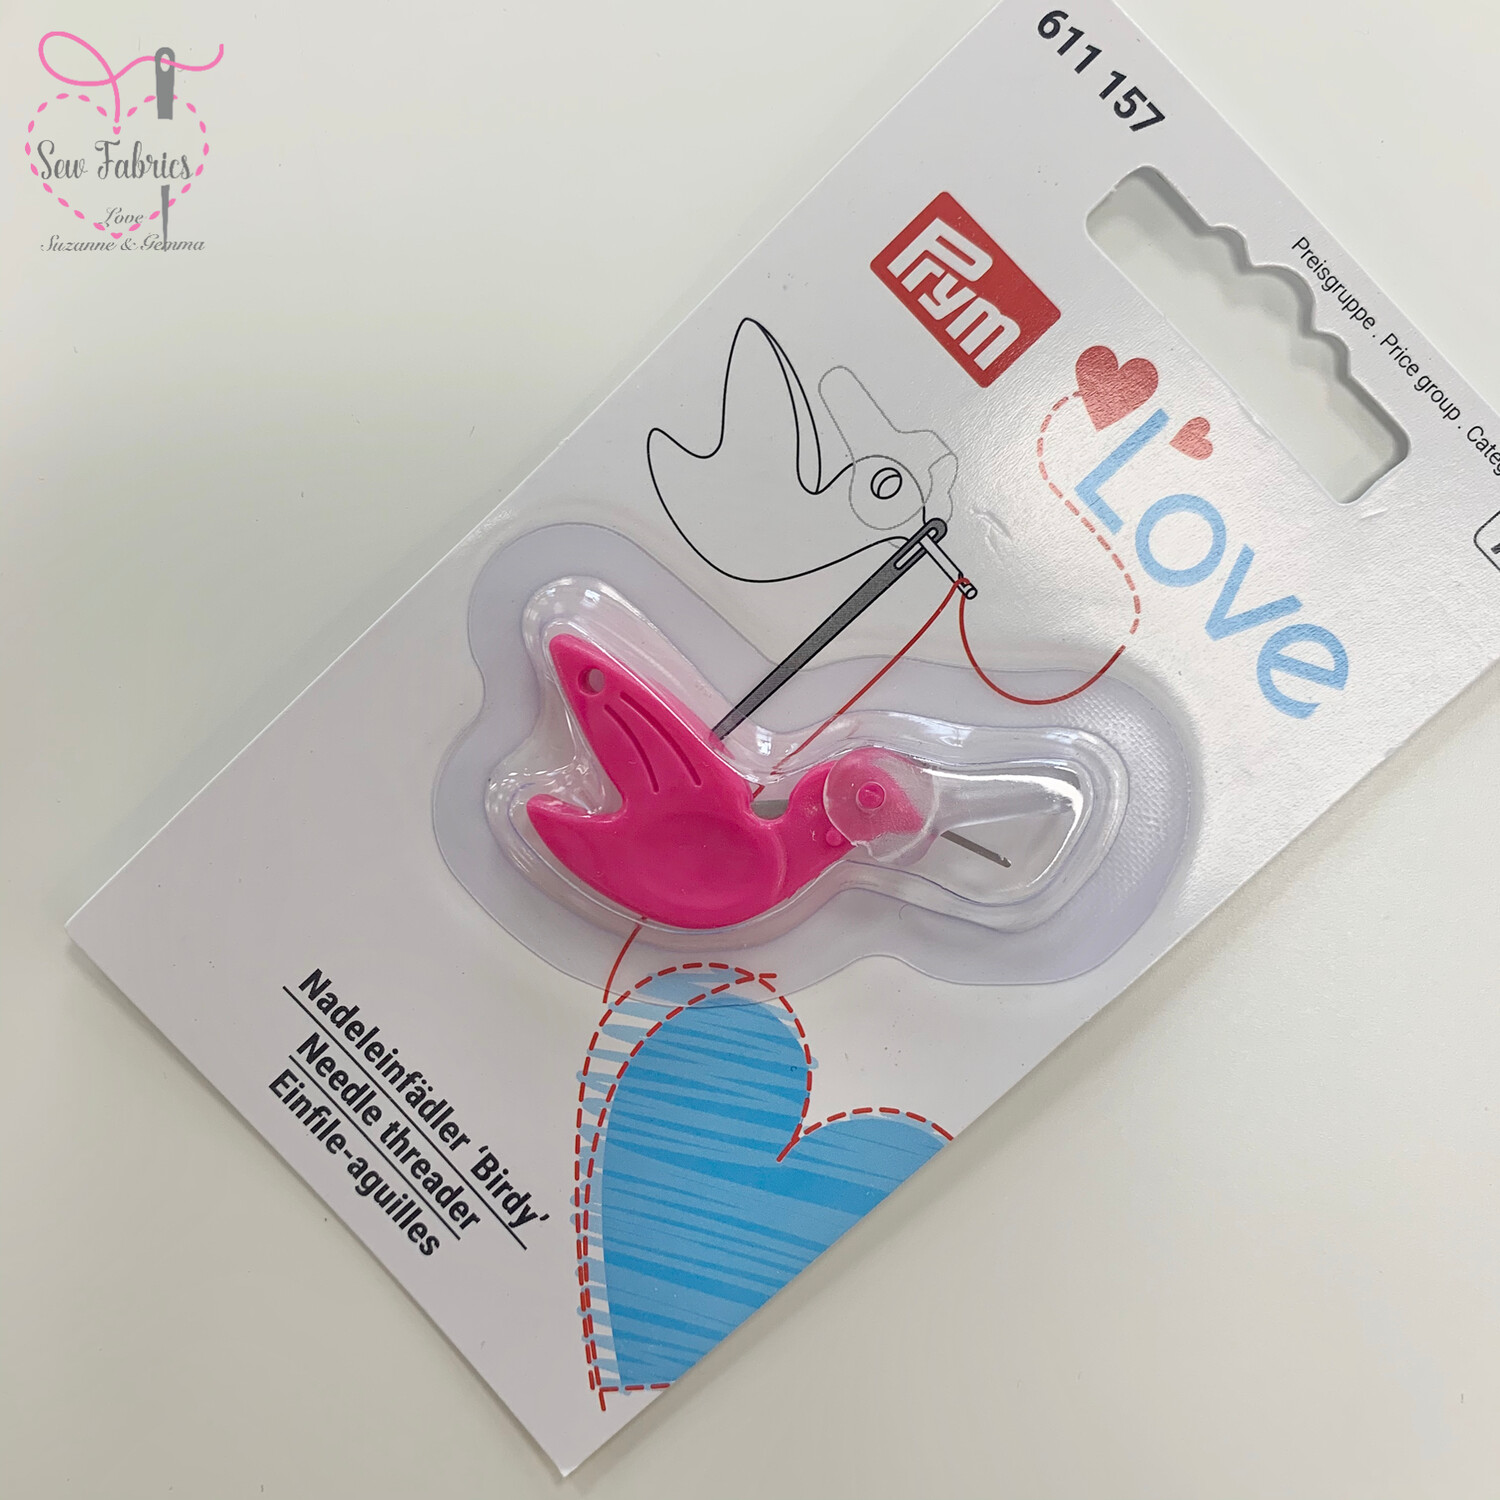 Prym Love 'Birdy' Needle Threader, Sewing, Dressmaking, Quilting Accessory, Pink